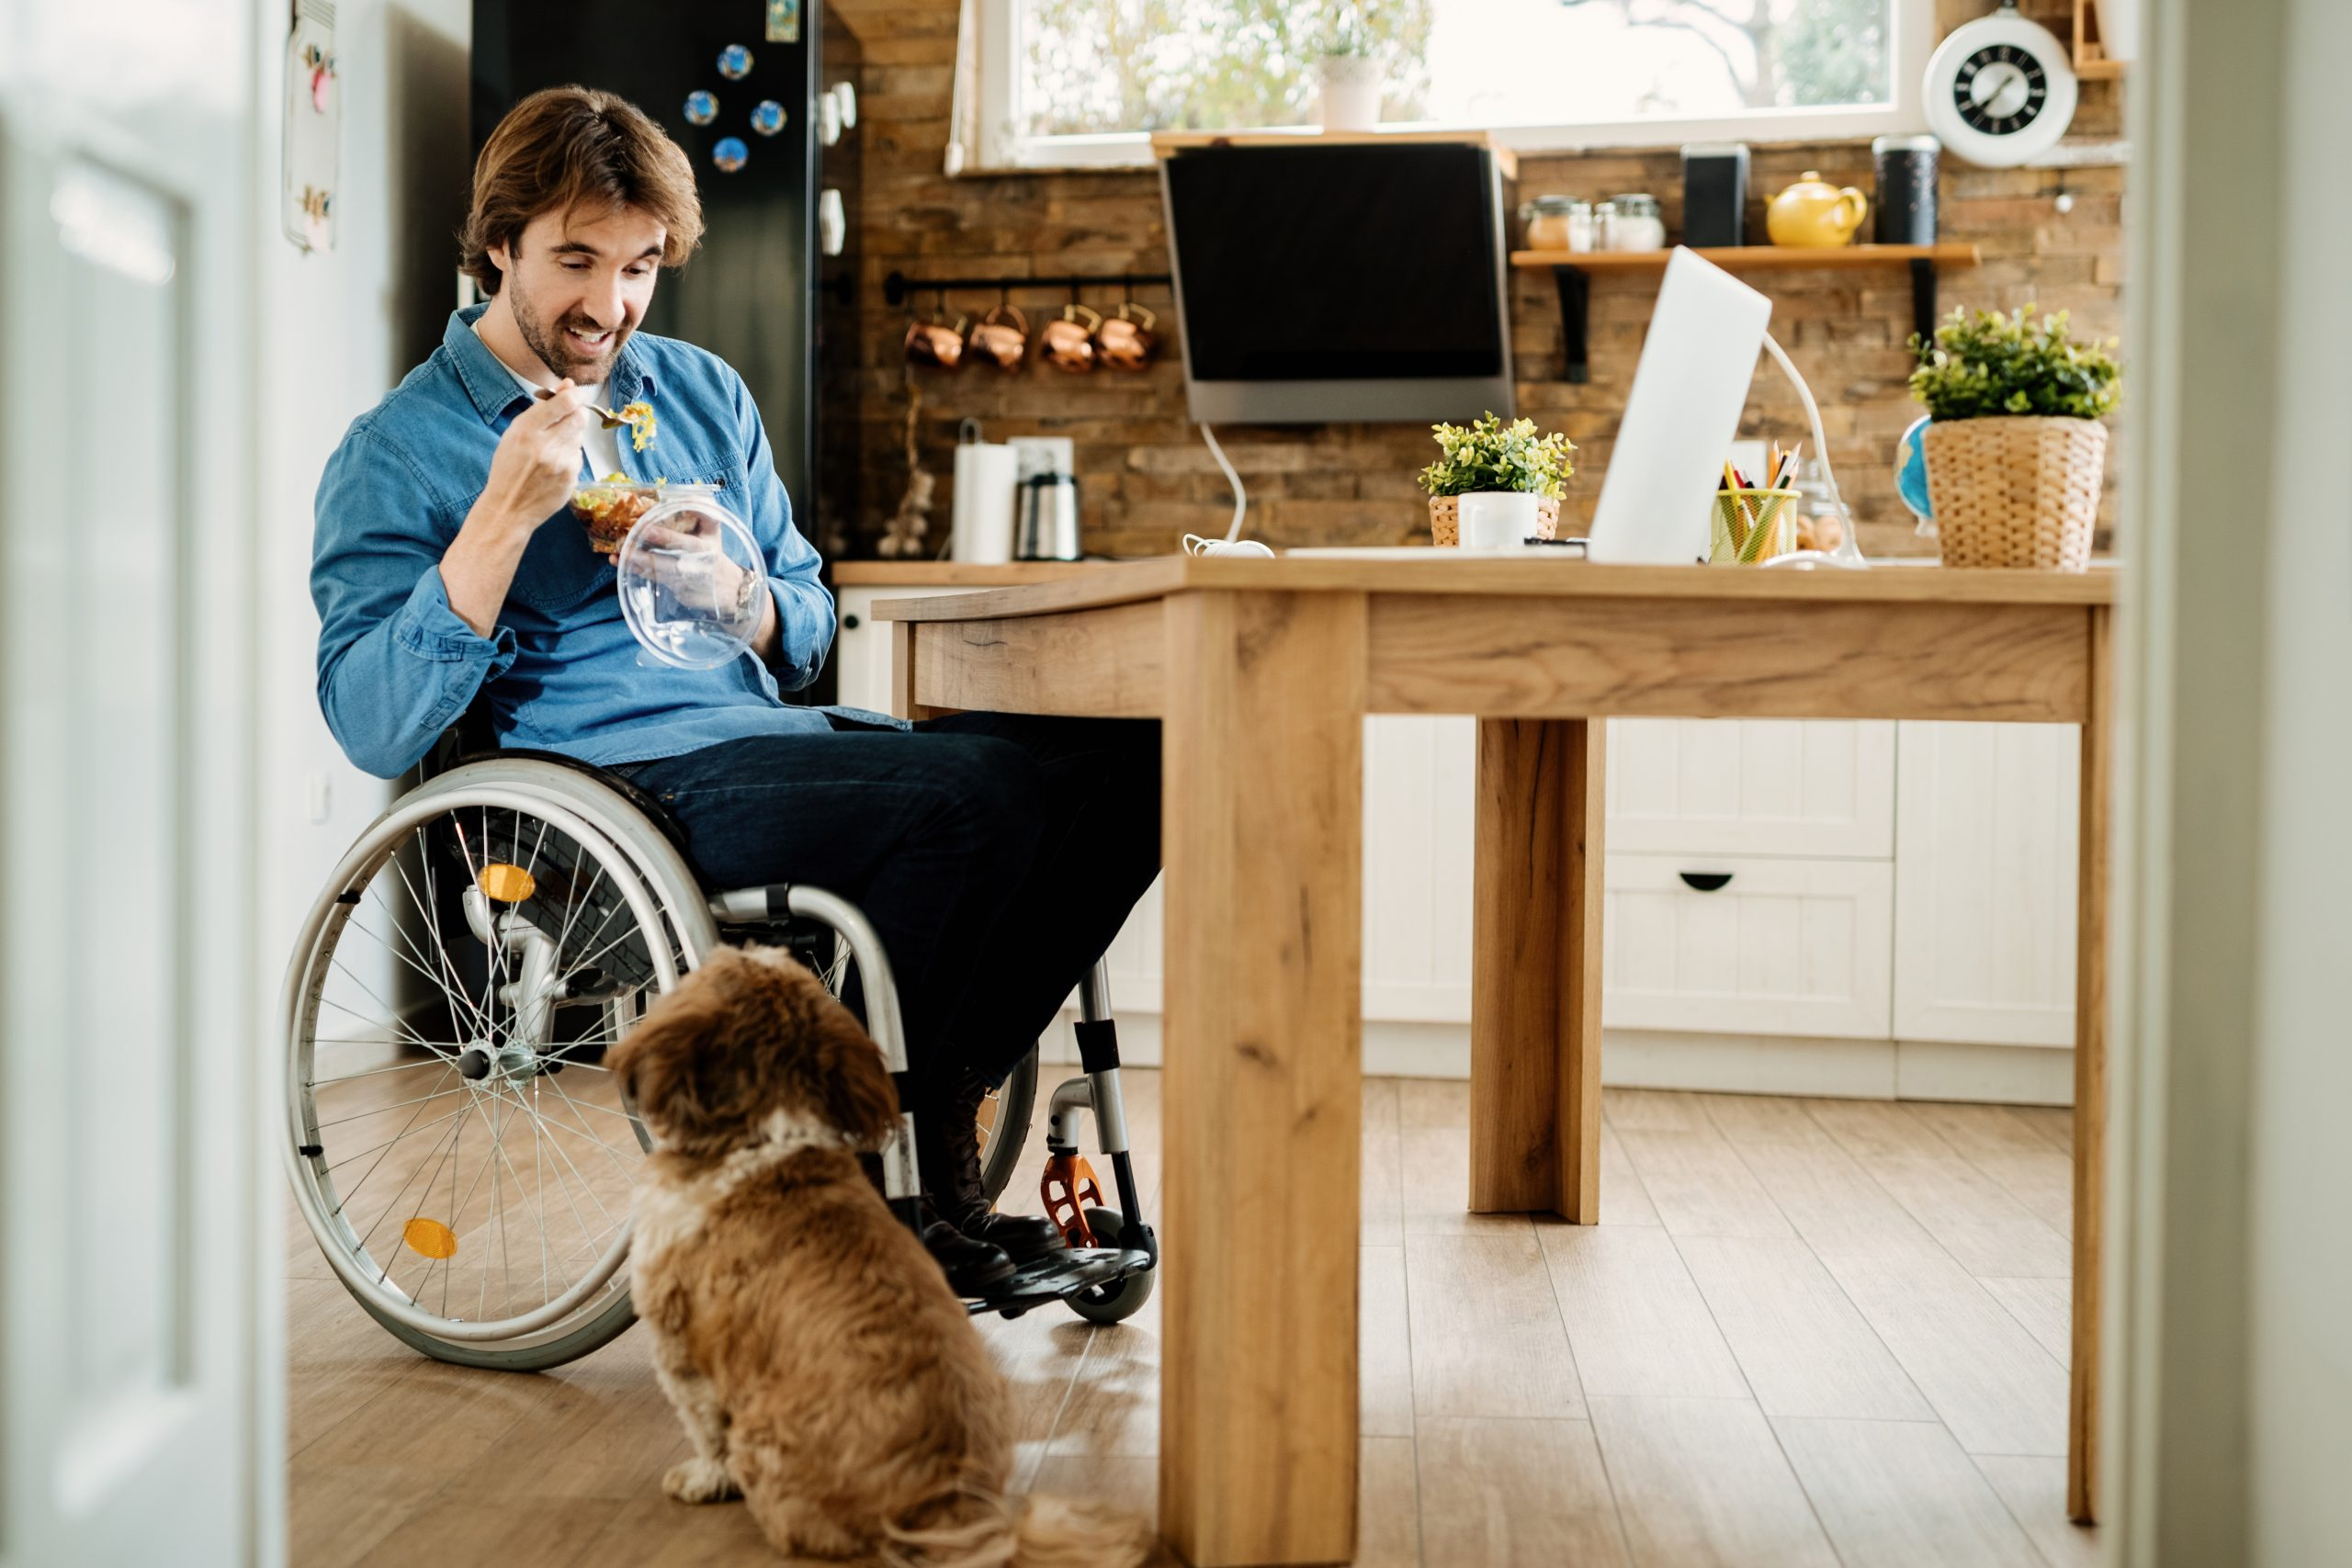 Dog looking up at man in a wheelchair eating